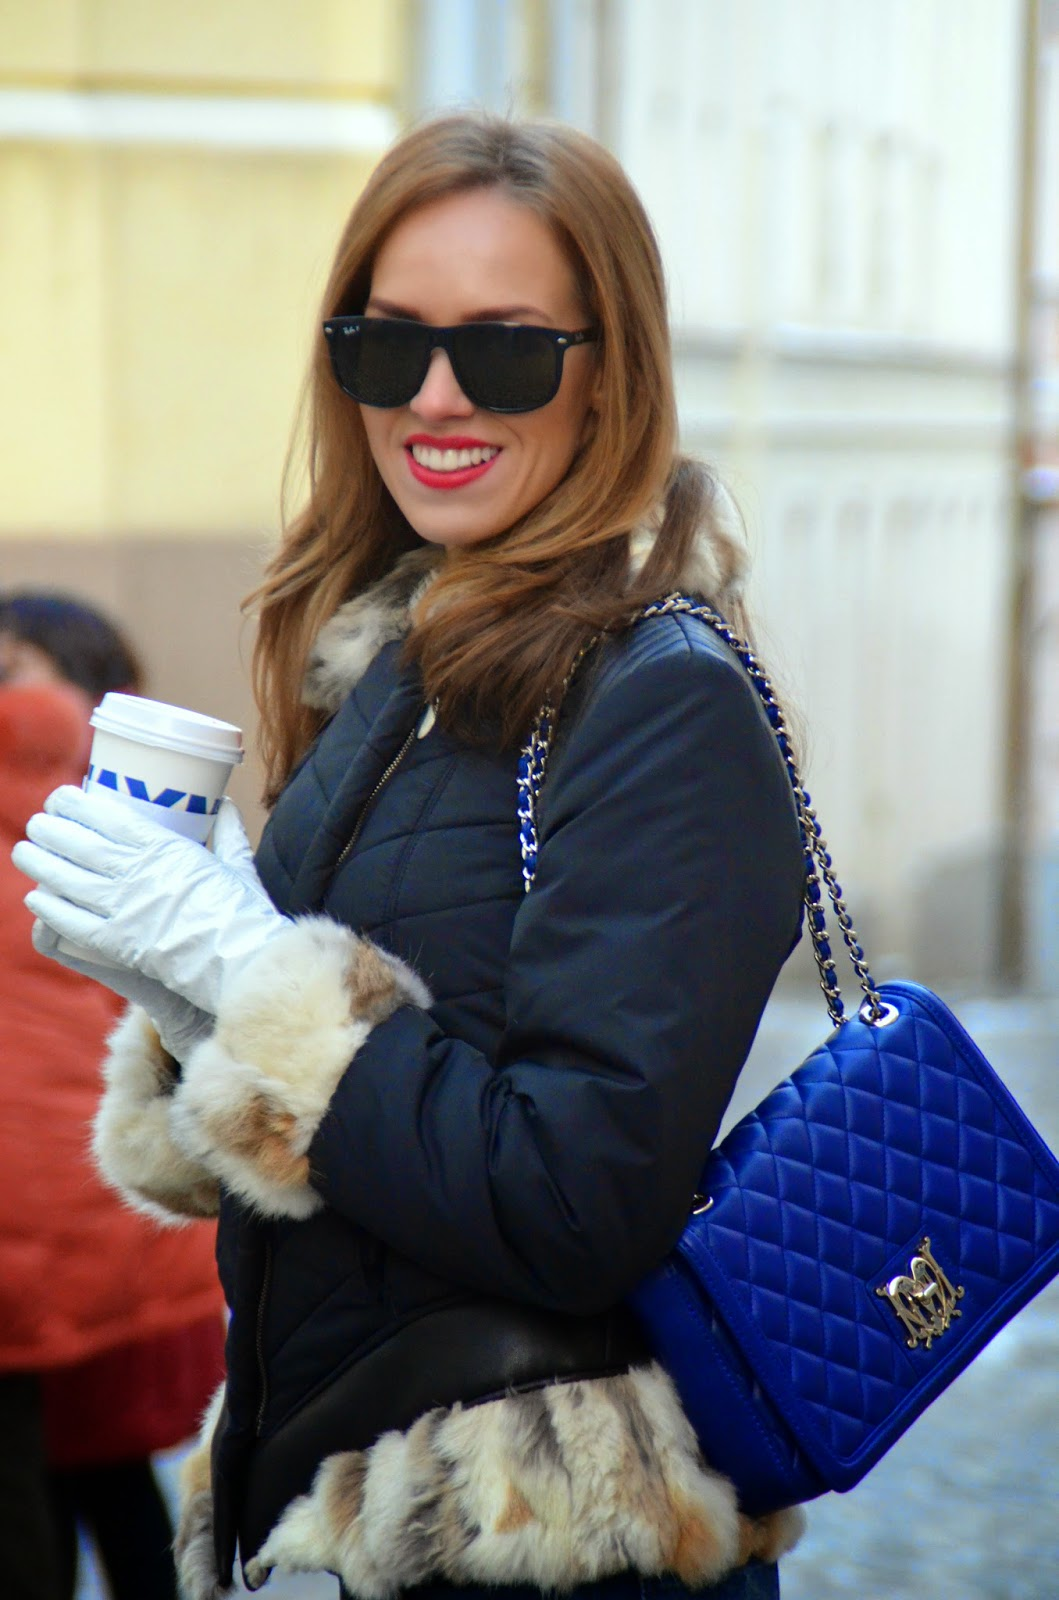 ray-ban-sunglasses-blue-moschino-bag-fur-coat kristjaana mere